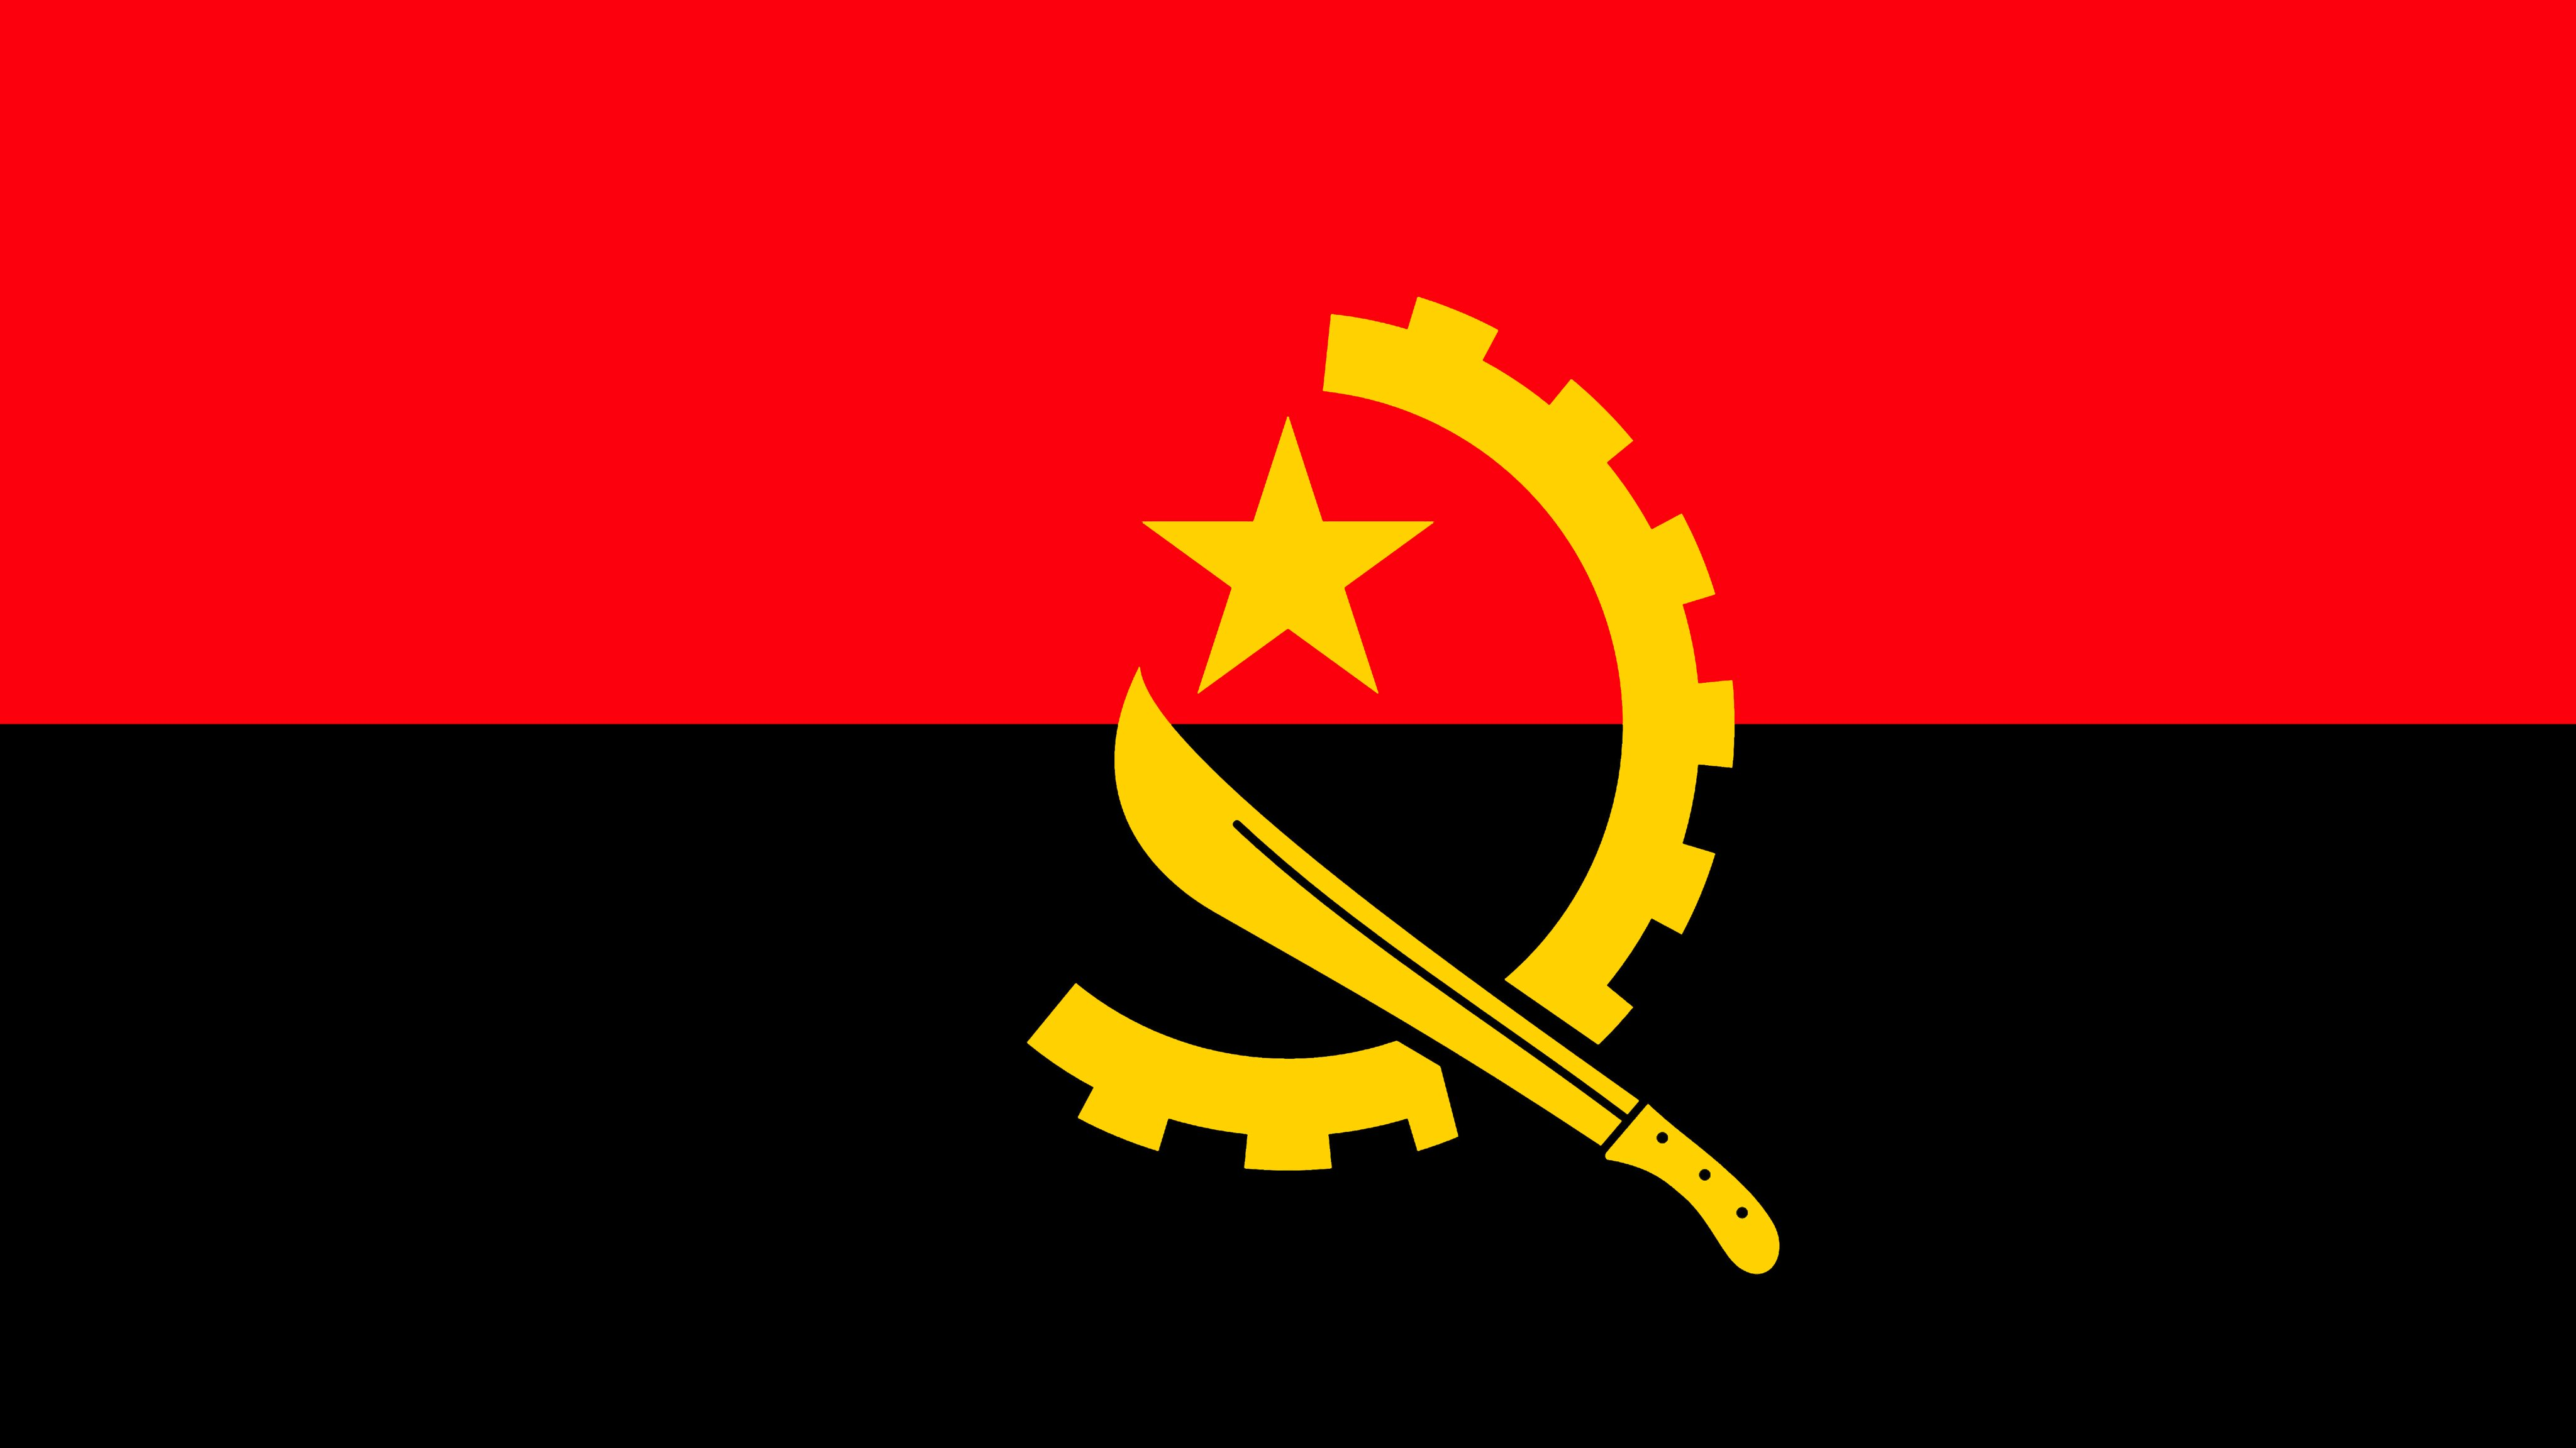 National flag of the Republic of Angola.